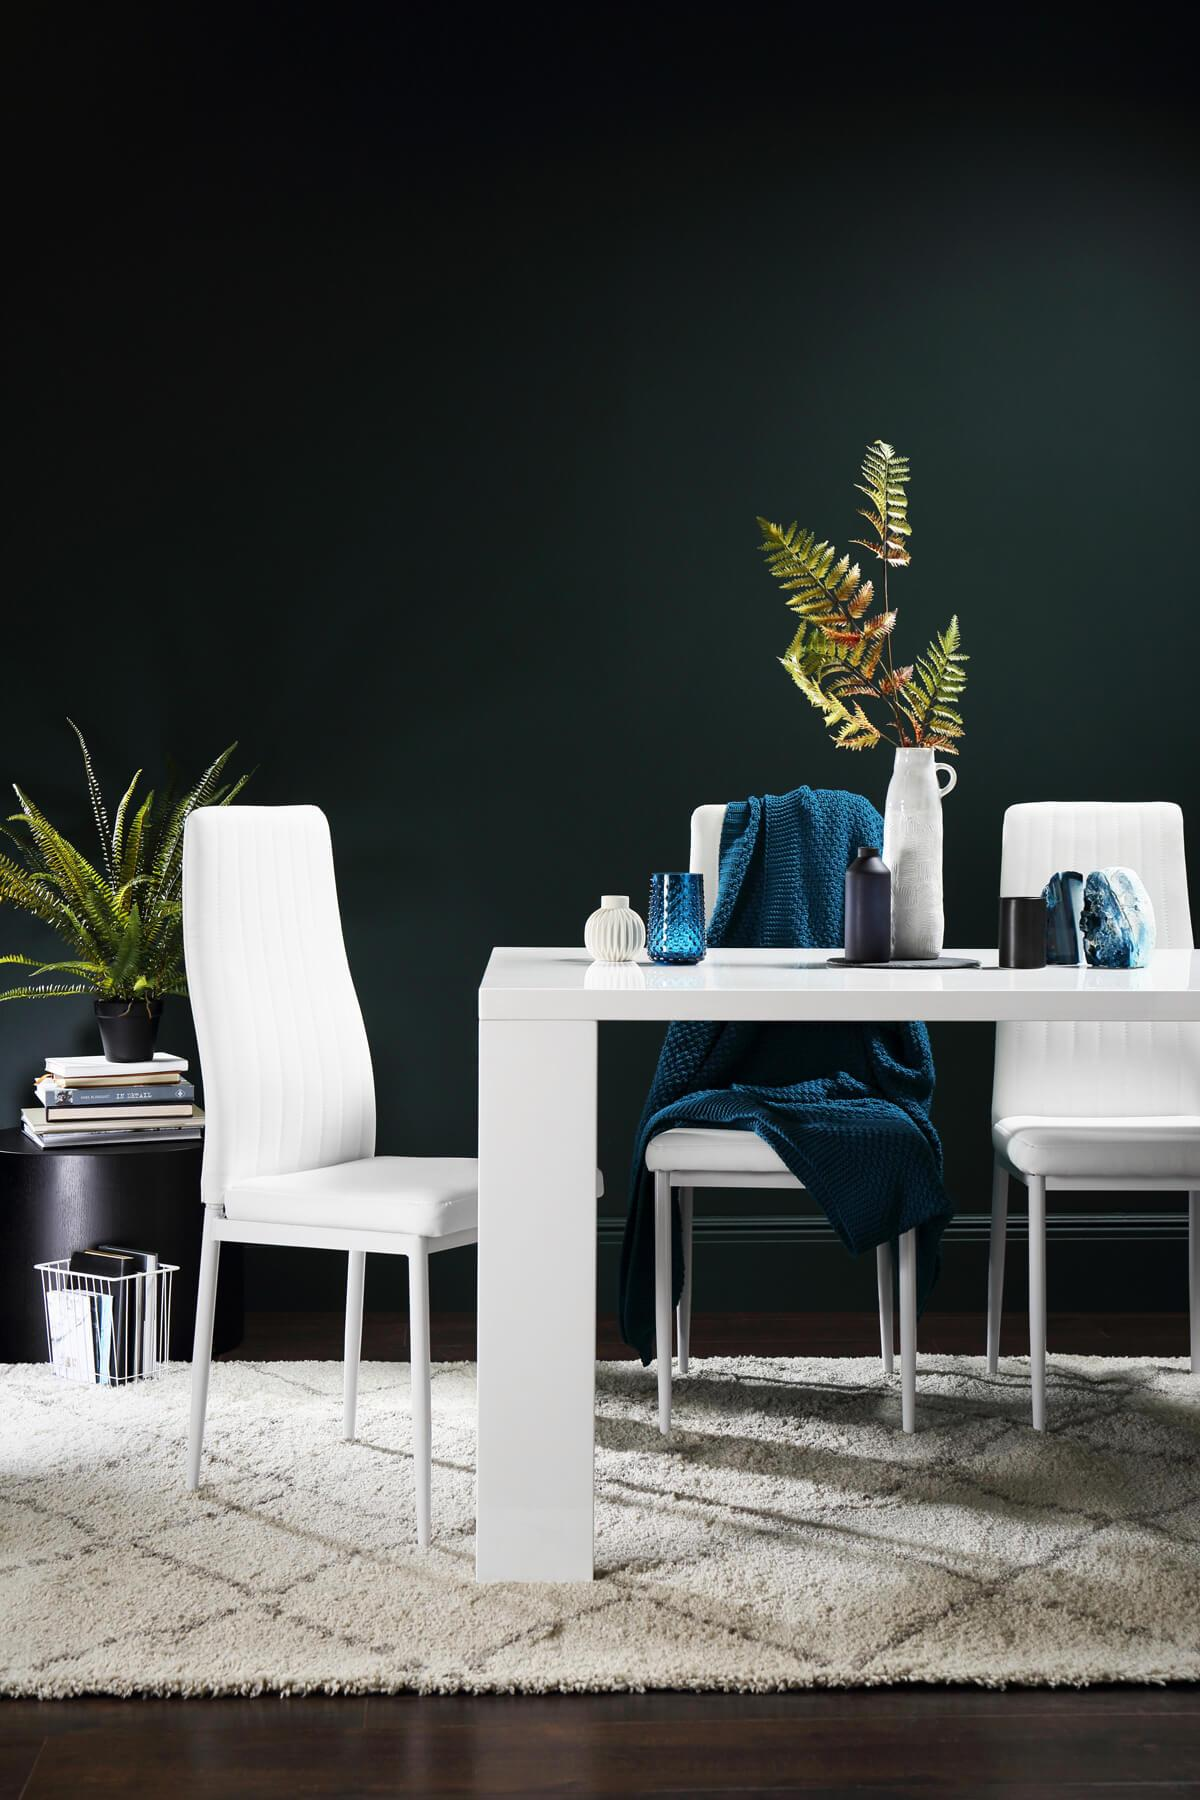 Eden 170cm White High Gloss Dining Table - with 6 Leon White Chairs (White Leg)